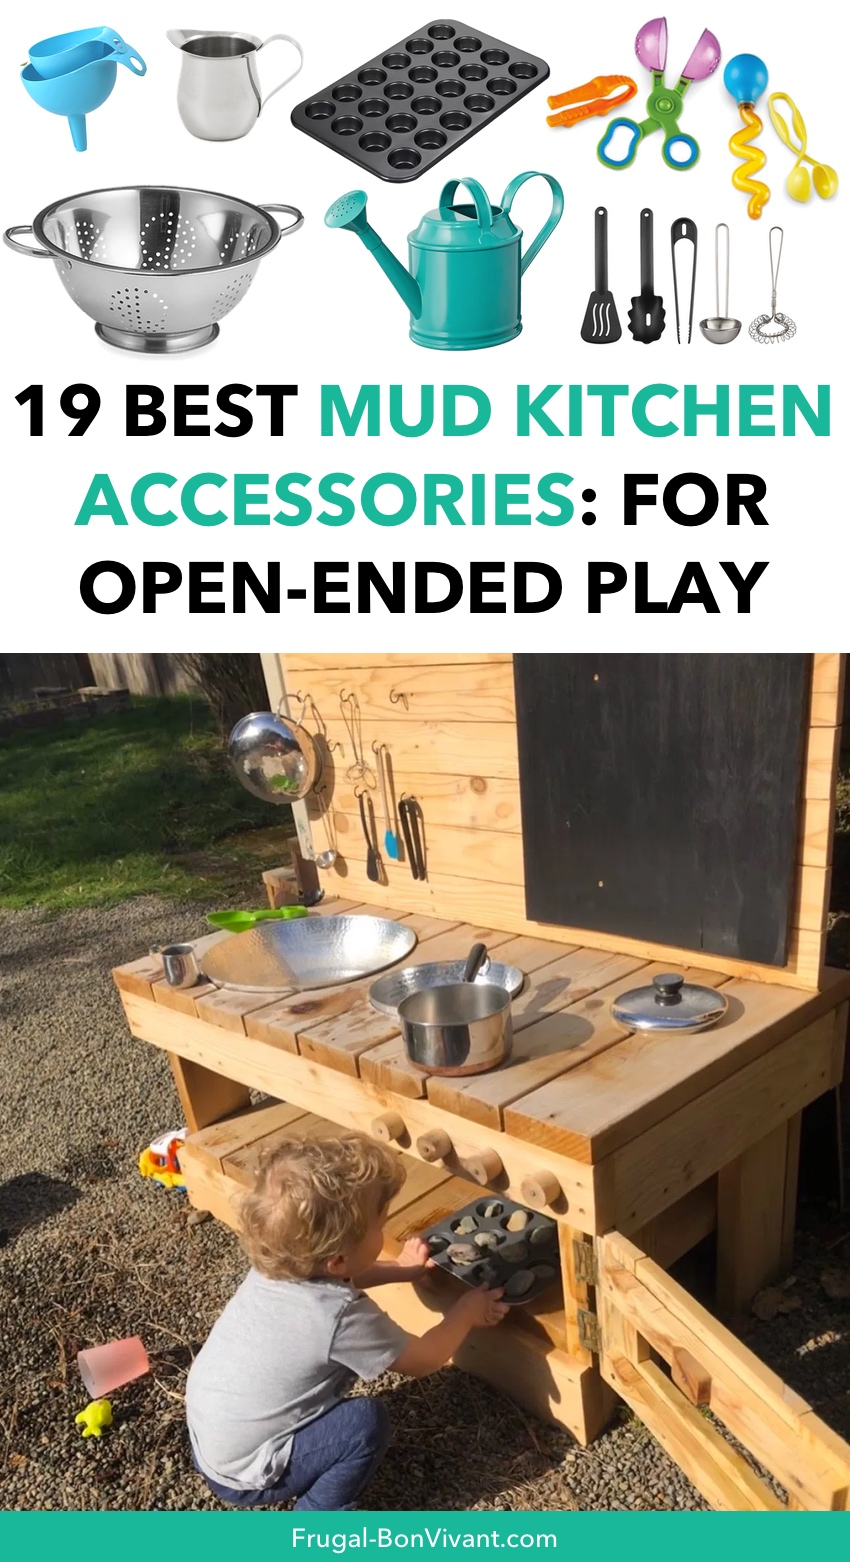 Best mud kitchen accessories ideas for open-ended play, tools, utensils, pouring and more